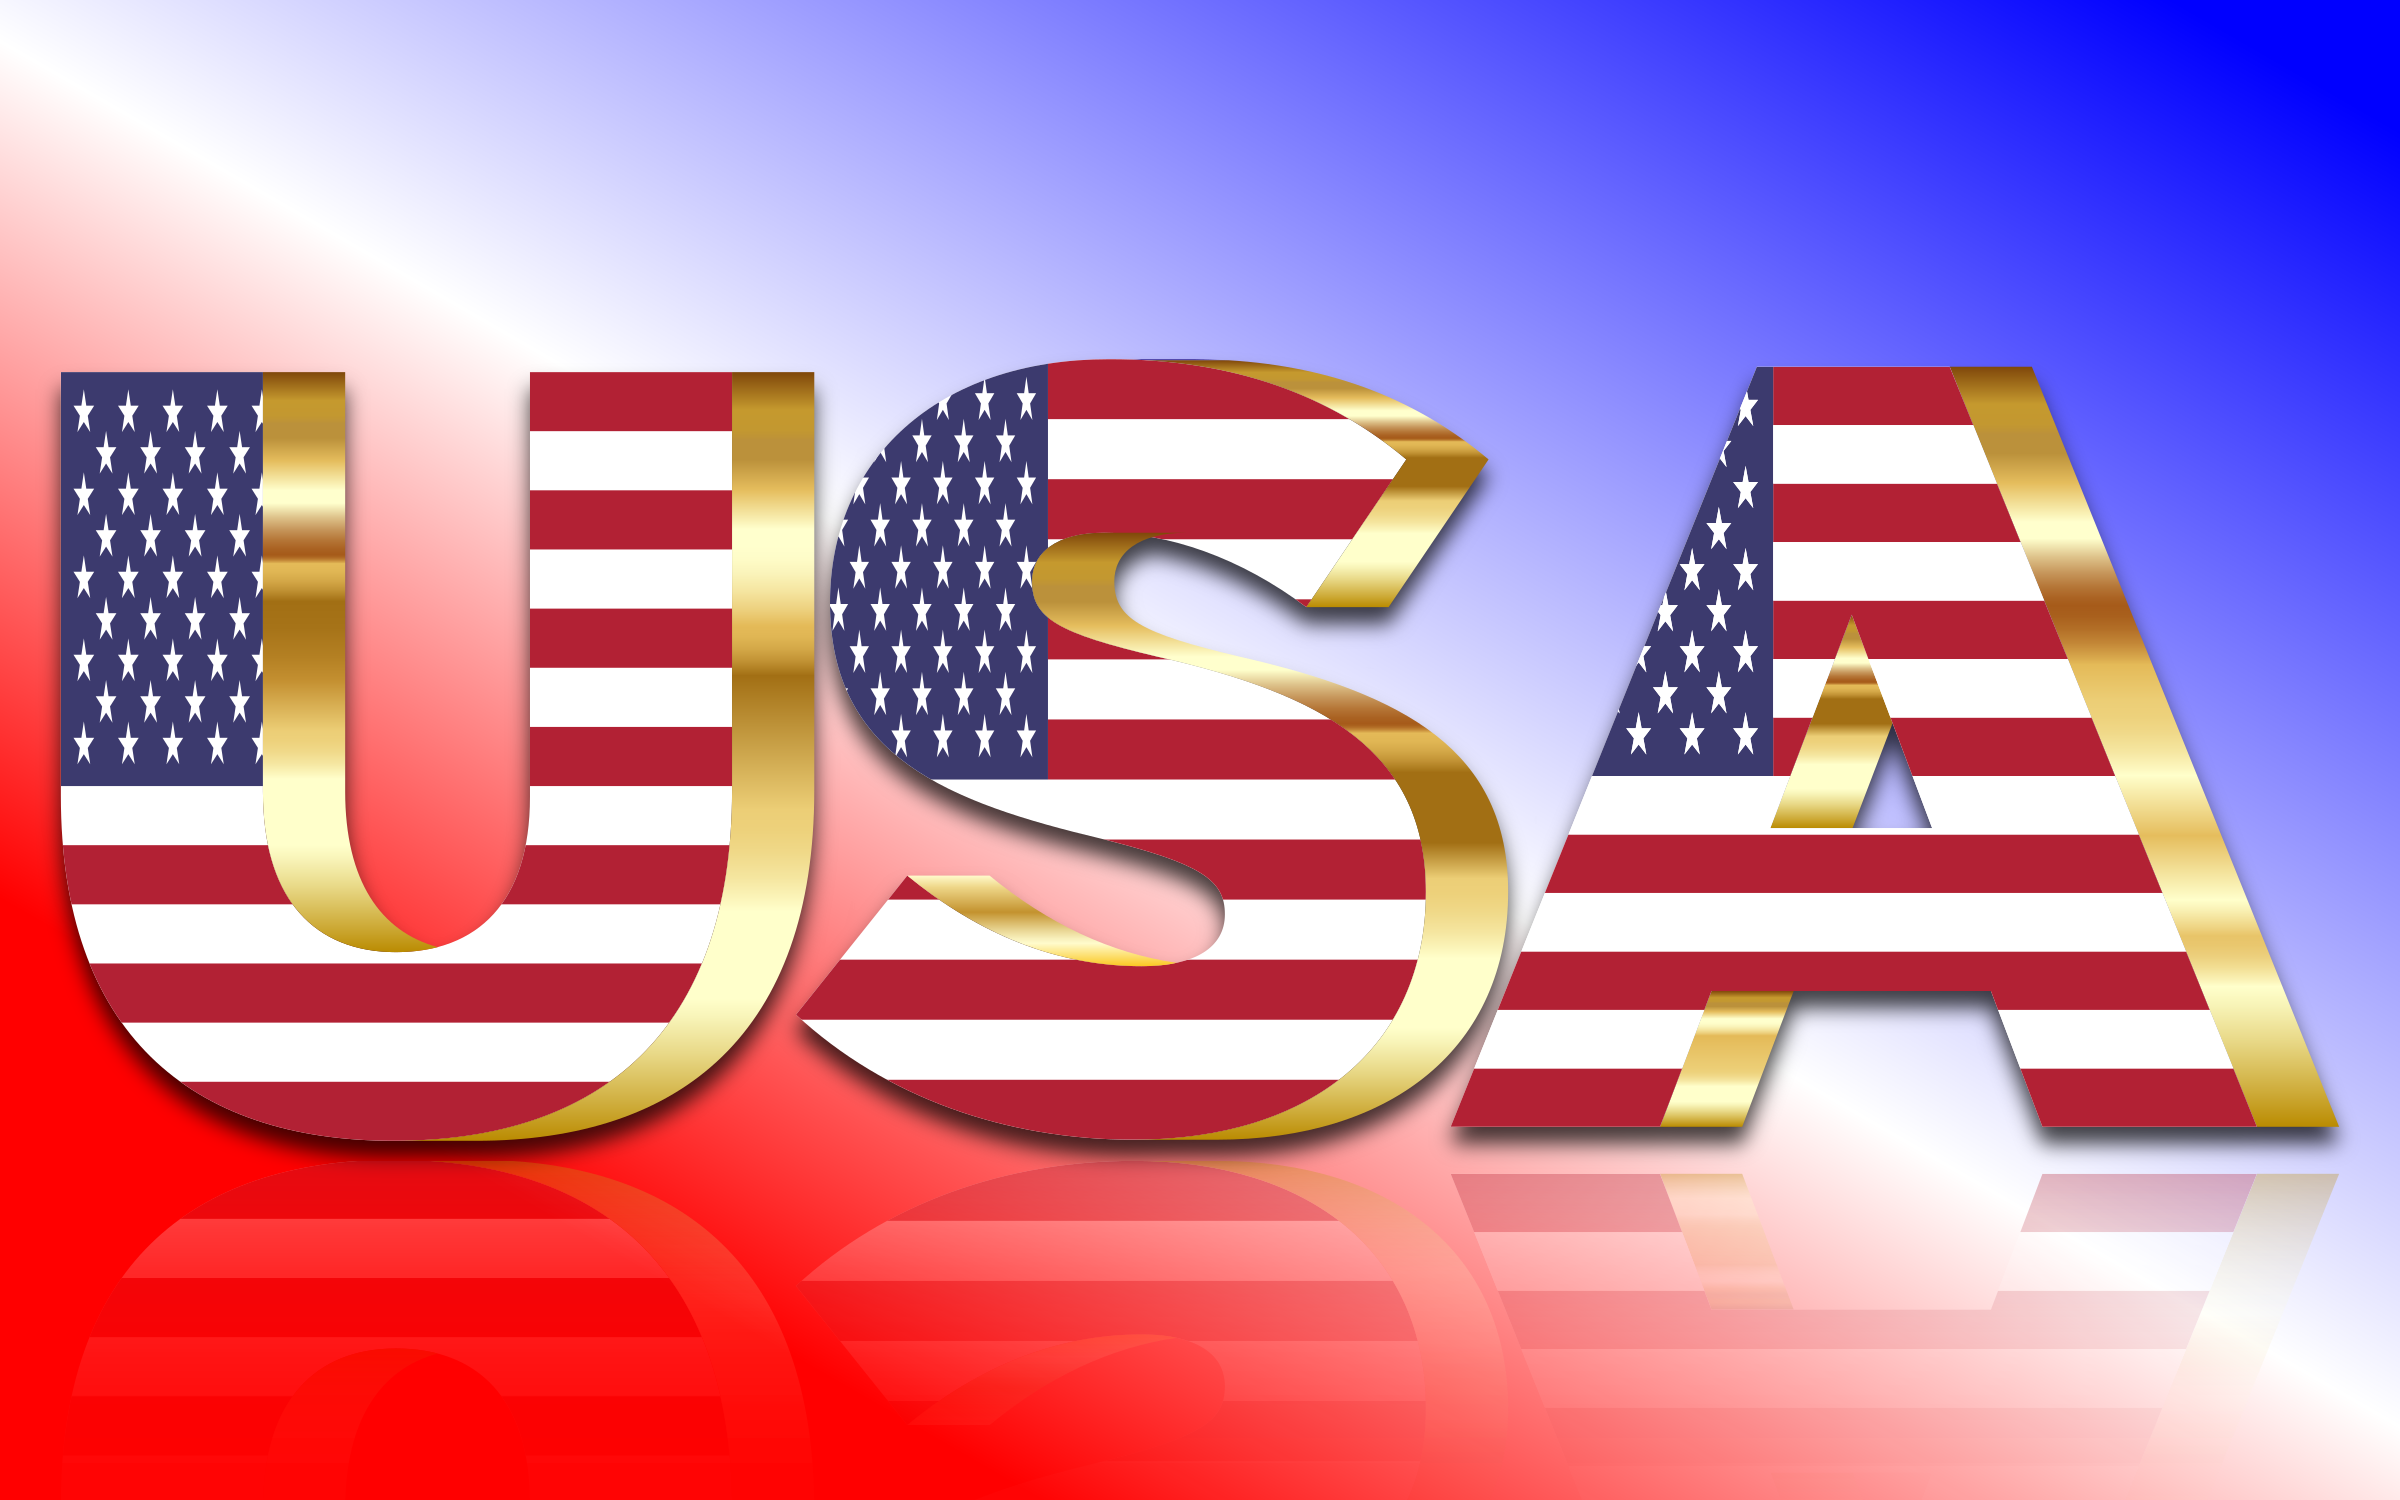 USA Flag Typography Gold With Reflection by GDJ